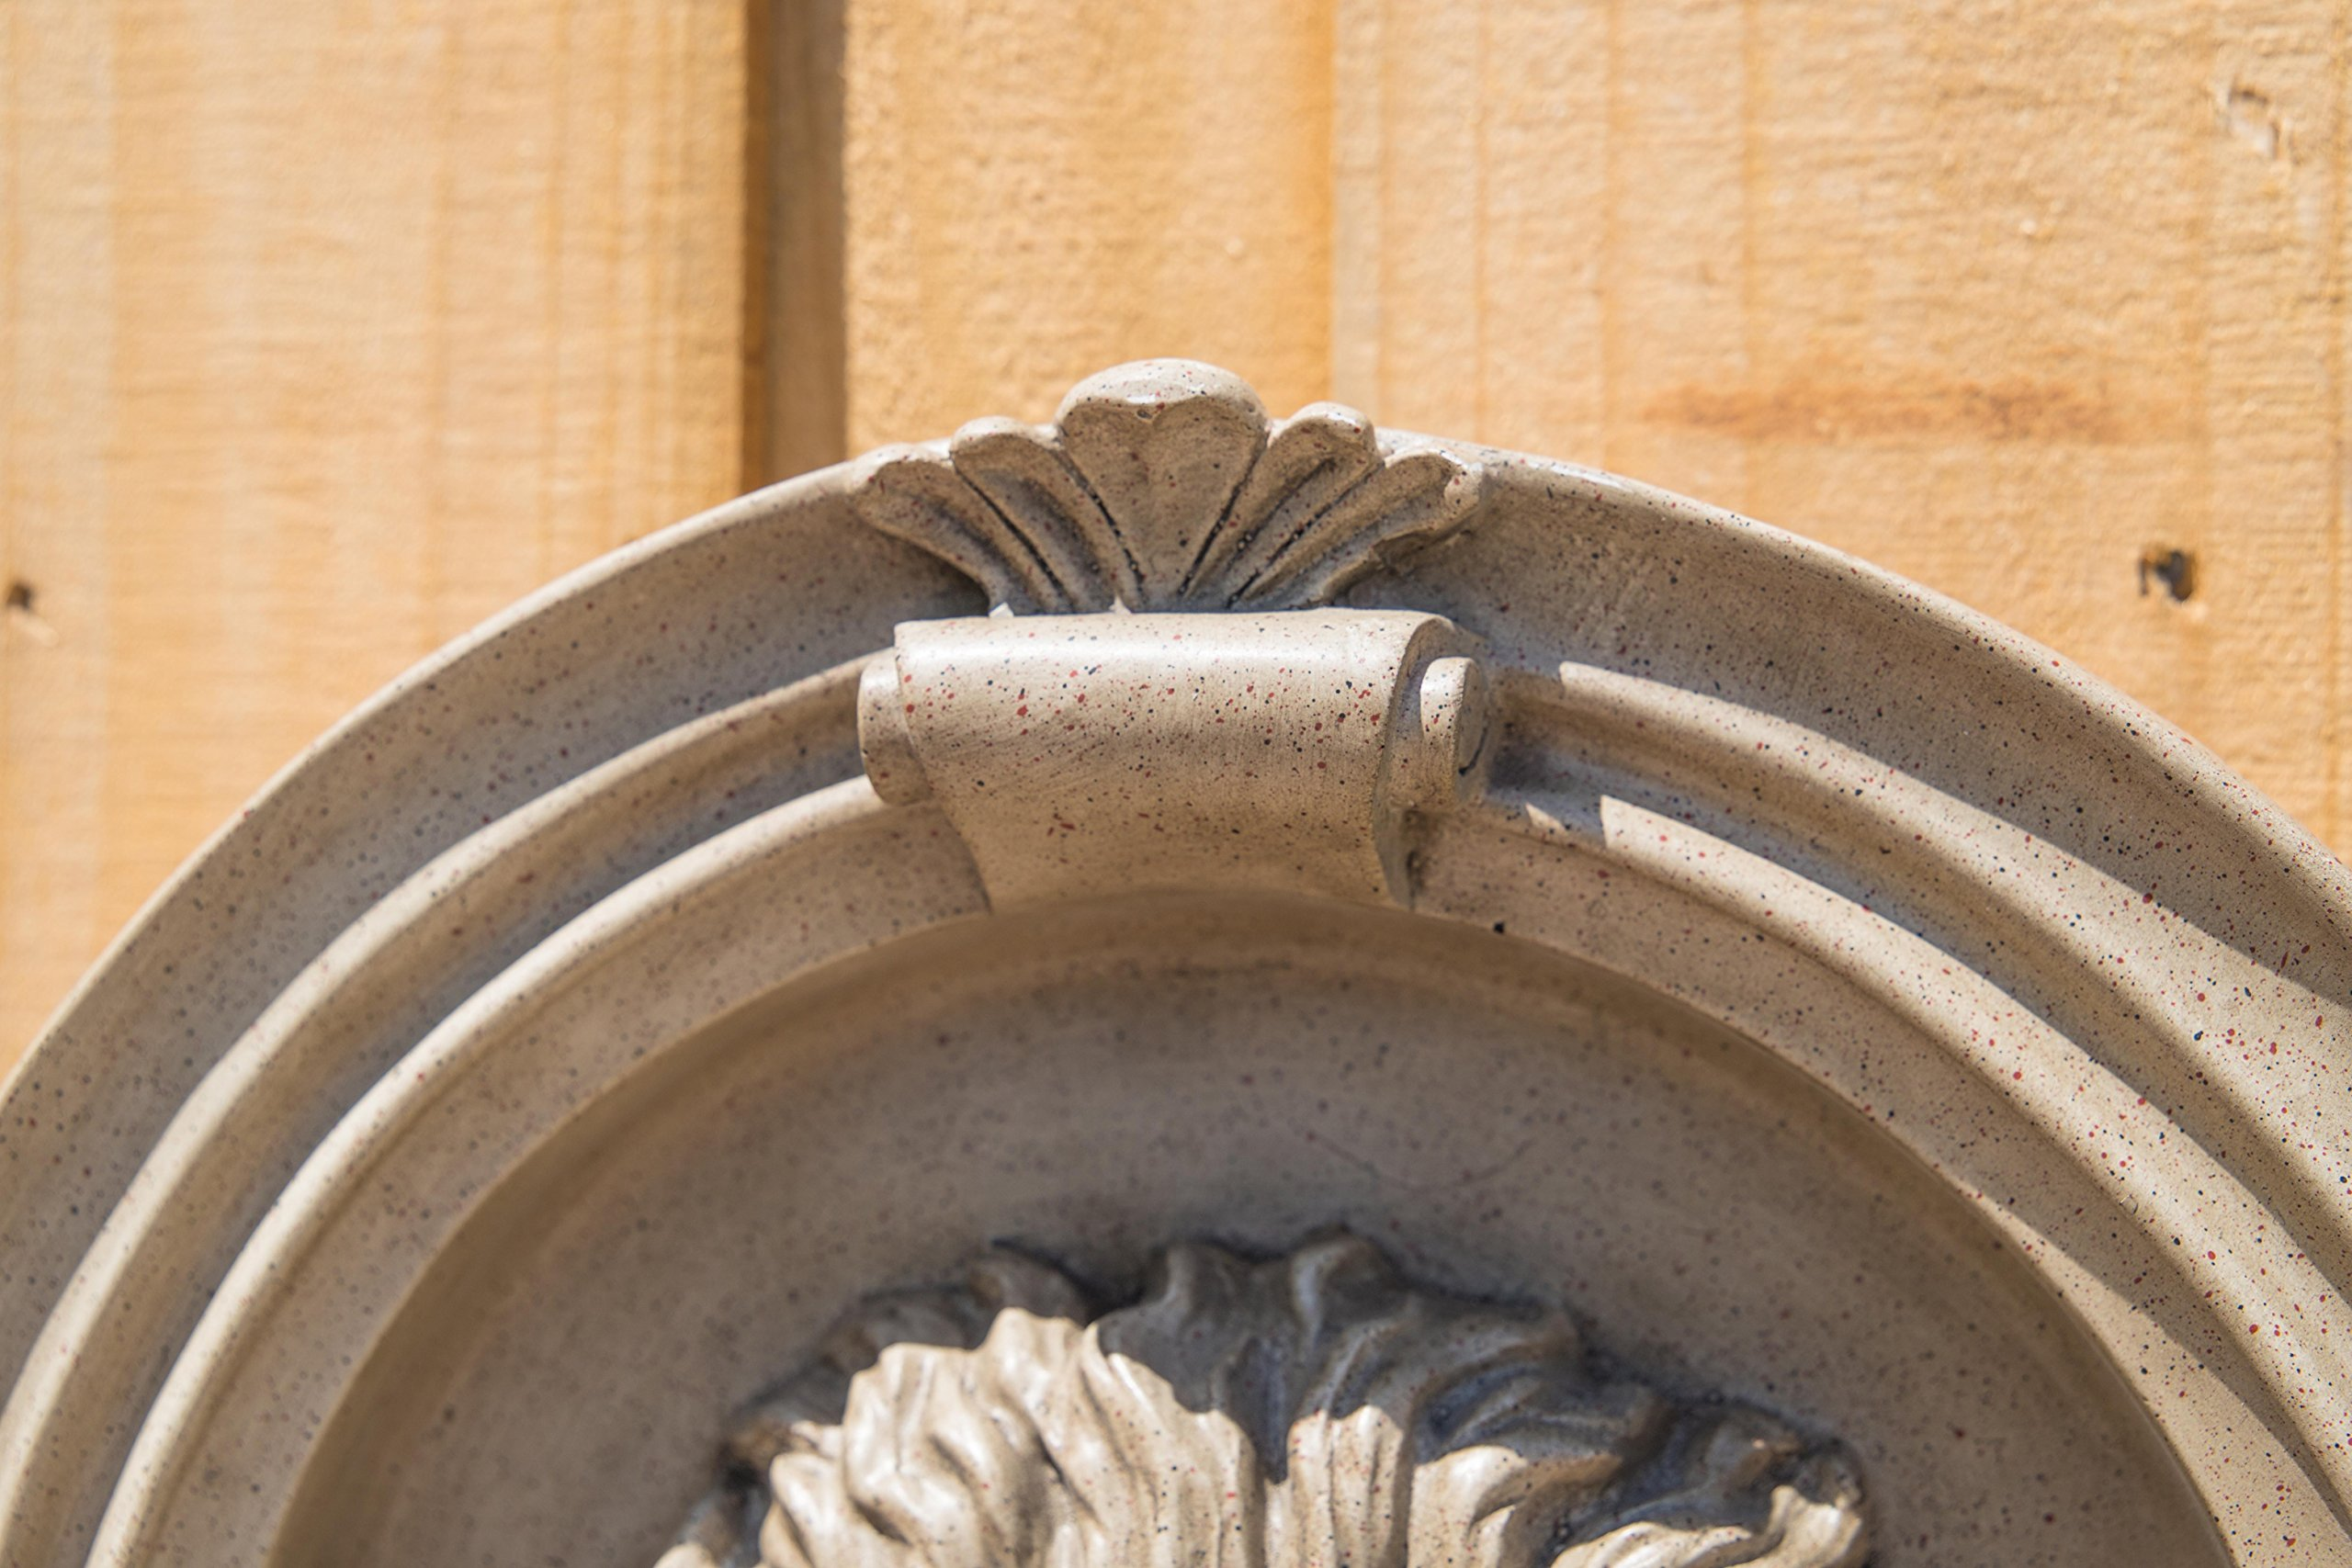 Kenroy Home 51043SNDST Royal Wall Fountain with Light, Sandstone Finish by Kenroy Home (Image #3)